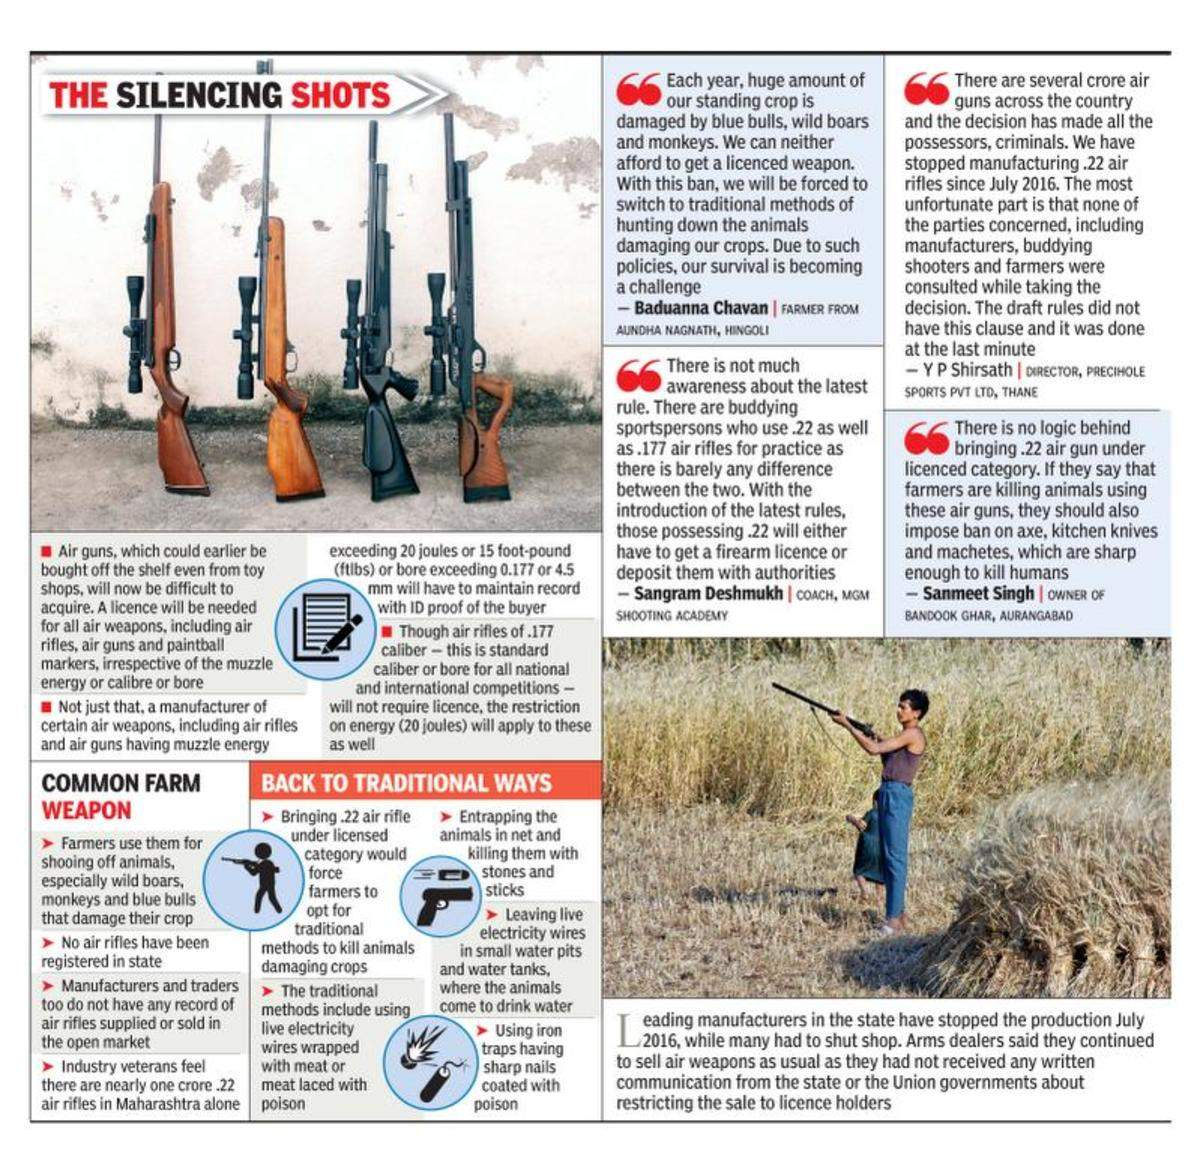 Air weapon owners fire at new rule | Aurangabad News - Times of India